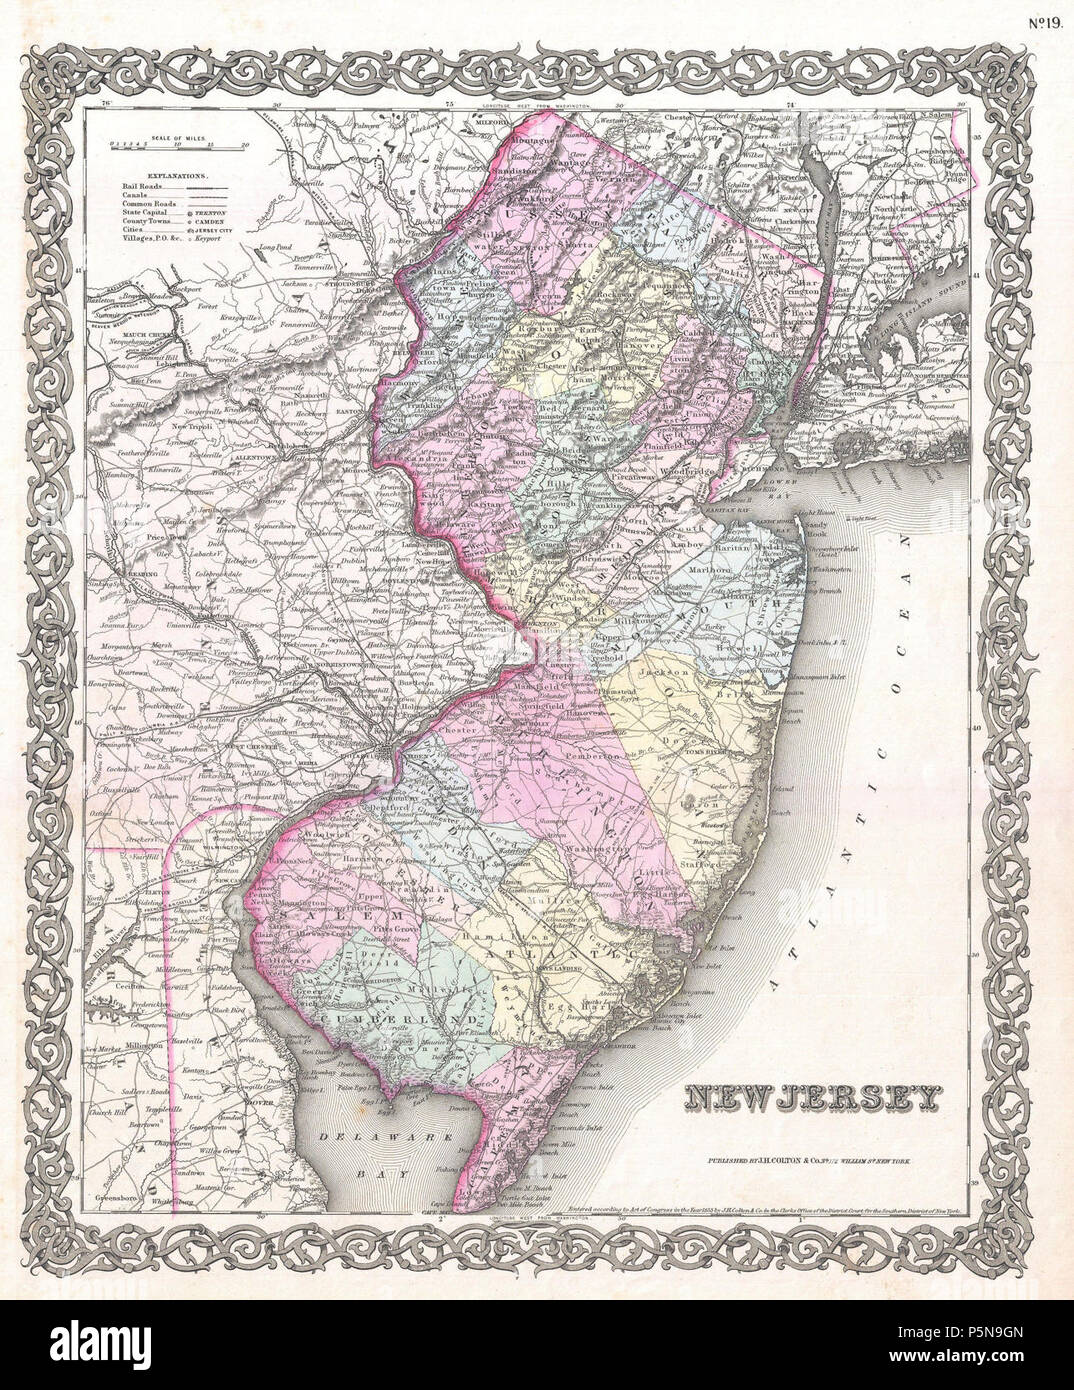 1855 Colton Map of New Jersey - Geographicus - NewJersey-colton-1855. - Stock Image